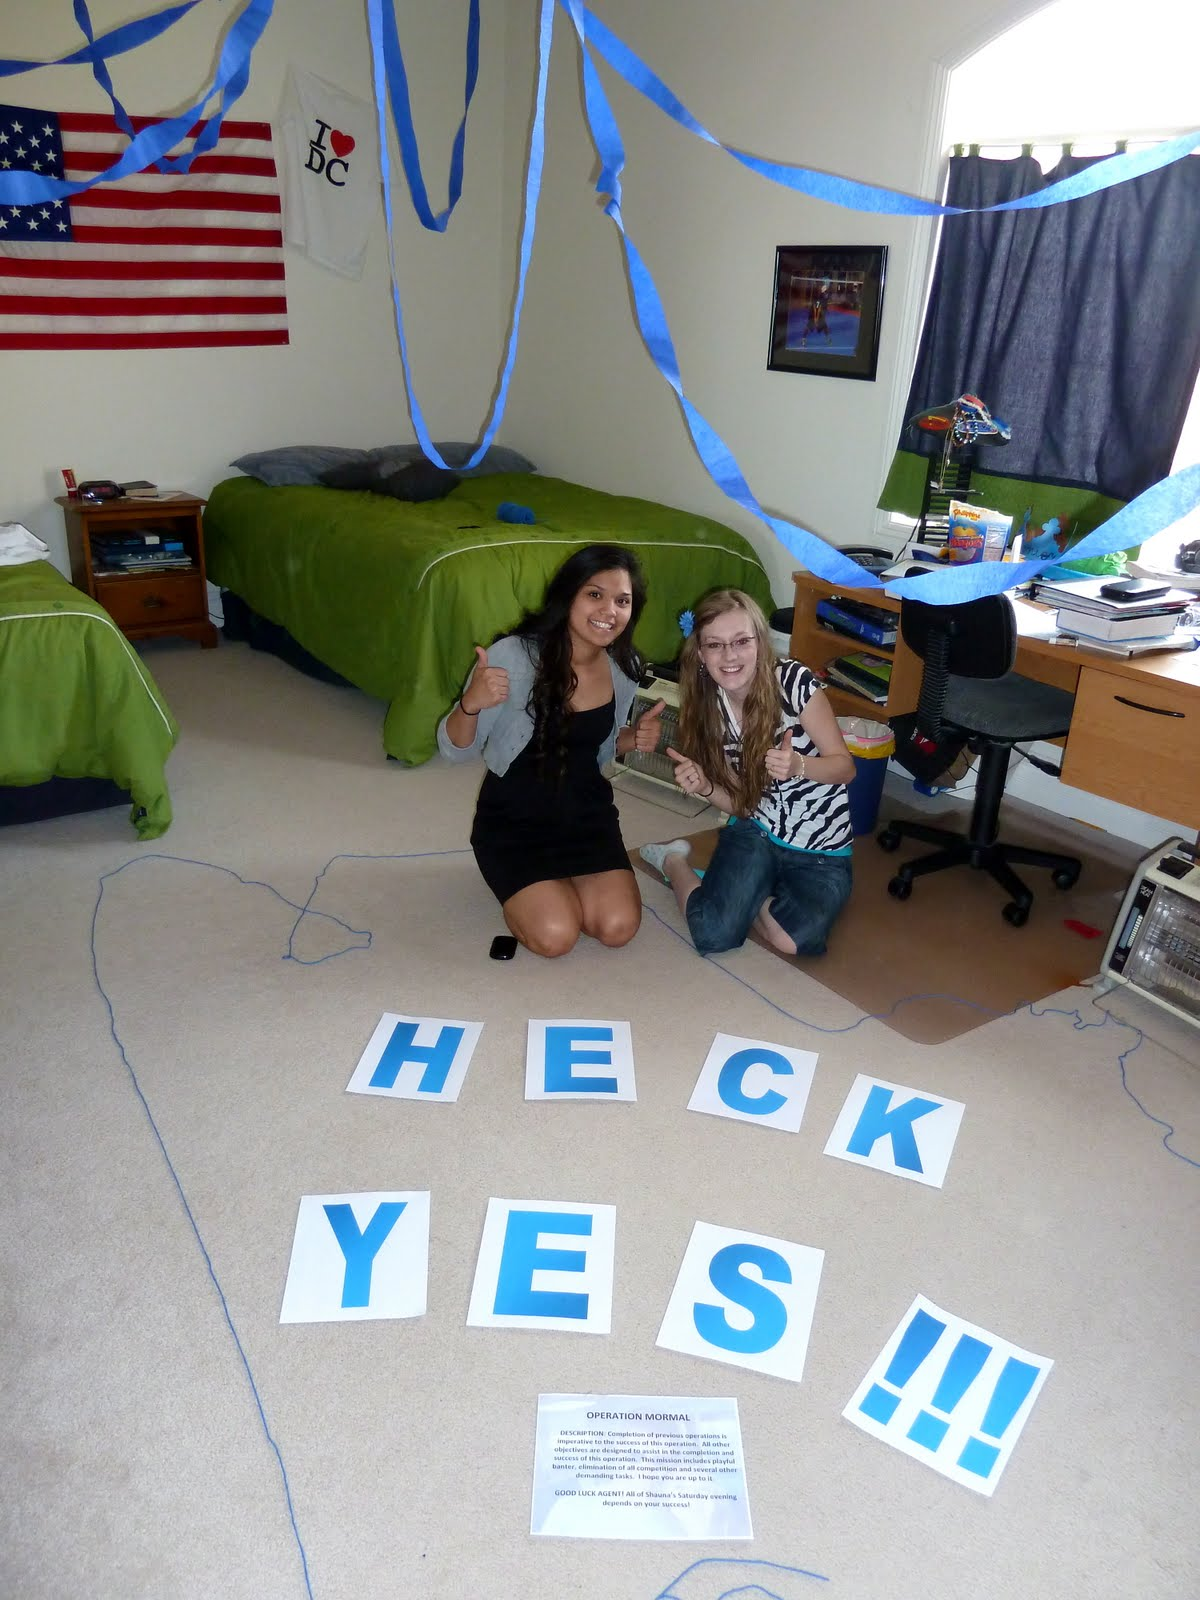 Cute Ways to Say Yes to a Date